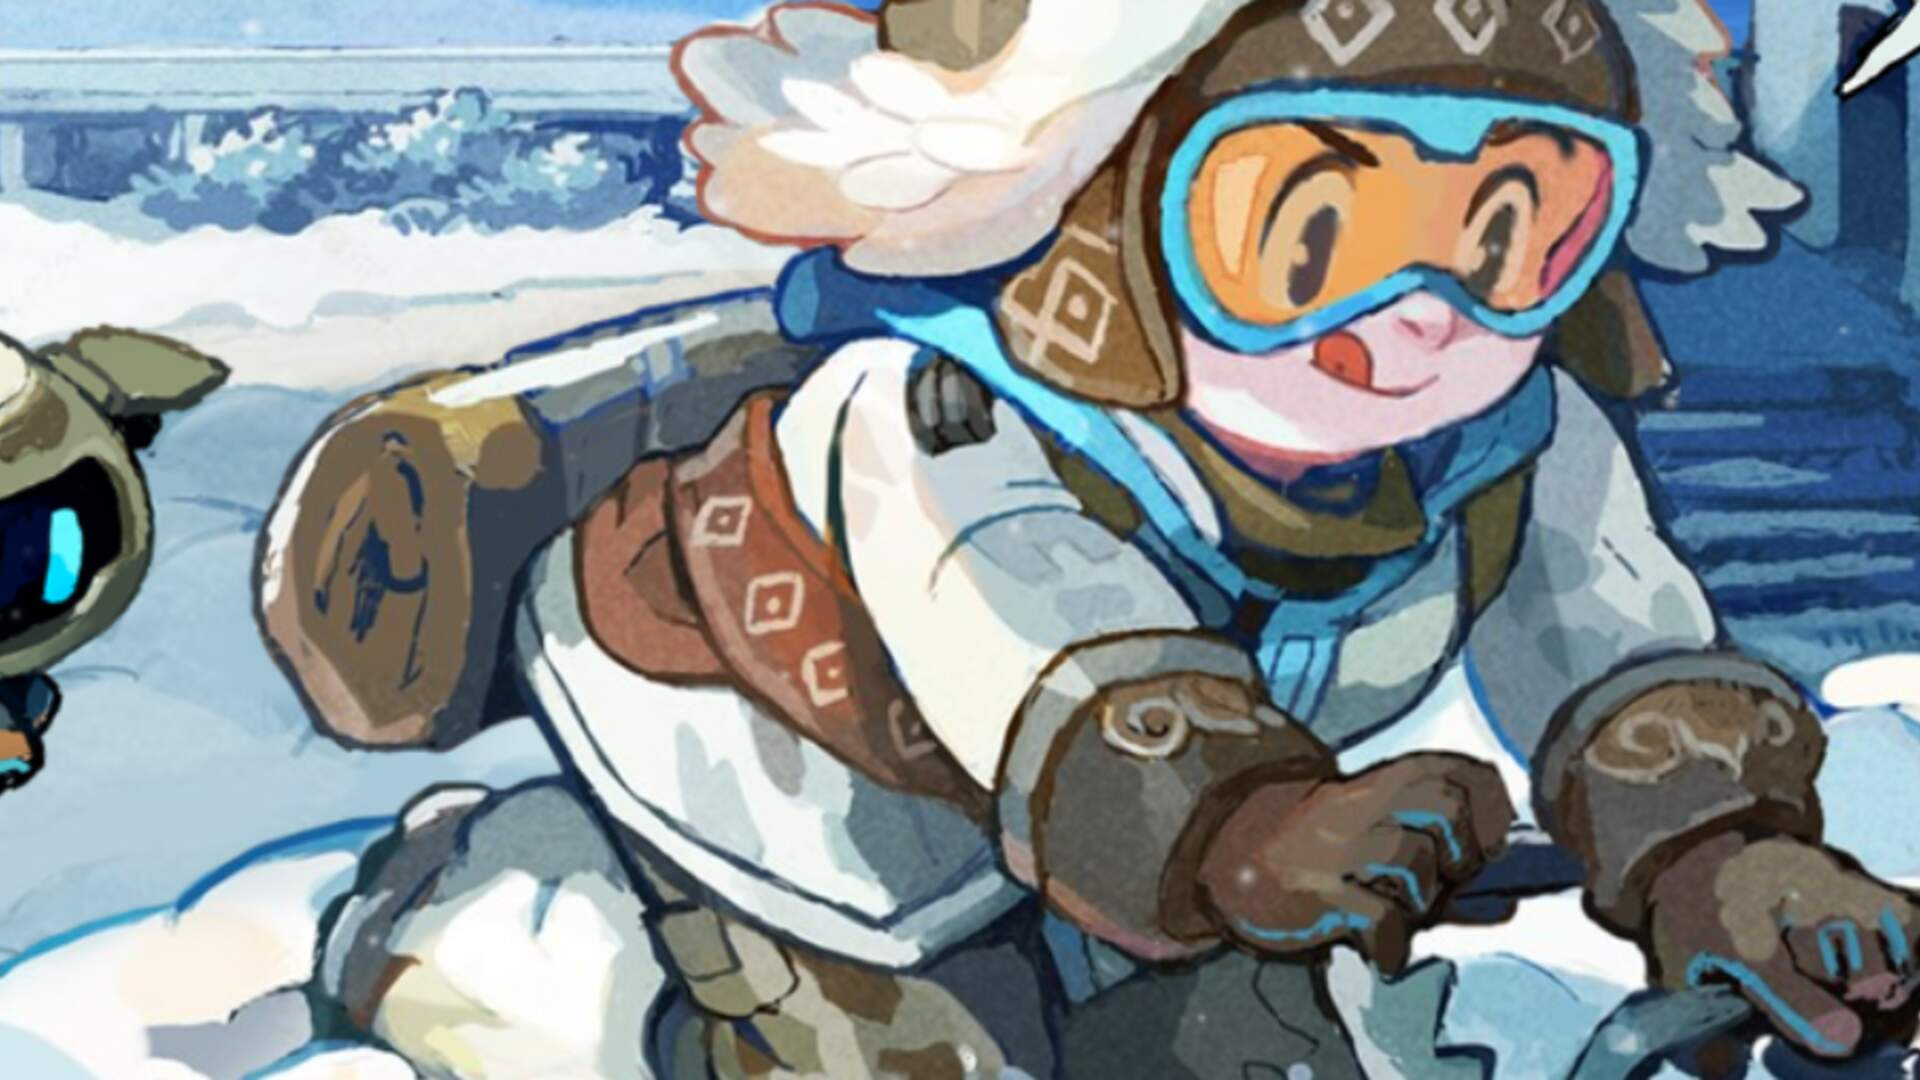 Mei is the Deadliest Winston Hunter In This Adorable Overwatch Comic